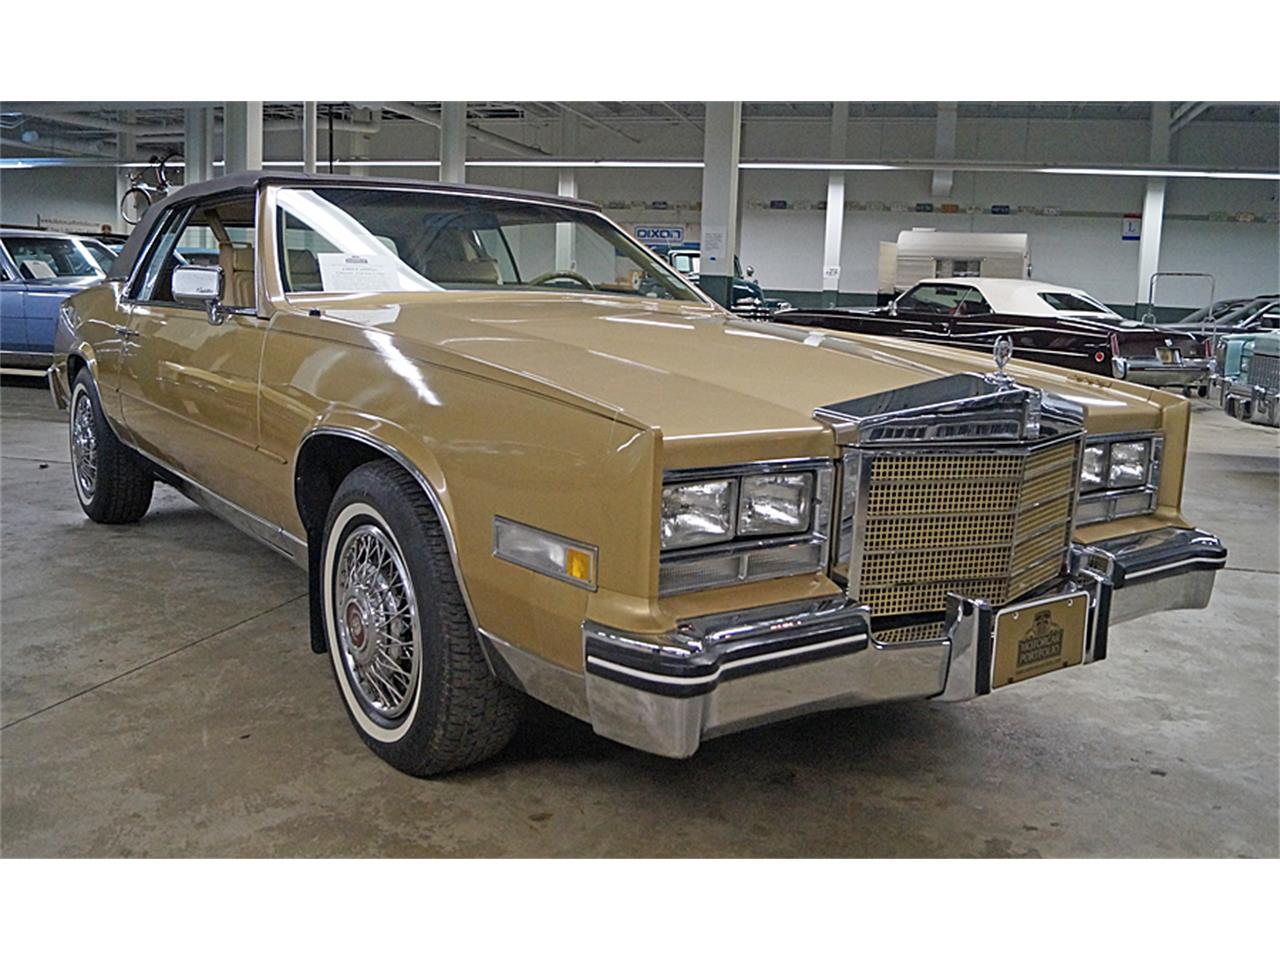 1985 cadillac eldorado for sale classiccars com cc 981335 1985 cadillac eldorado for sale